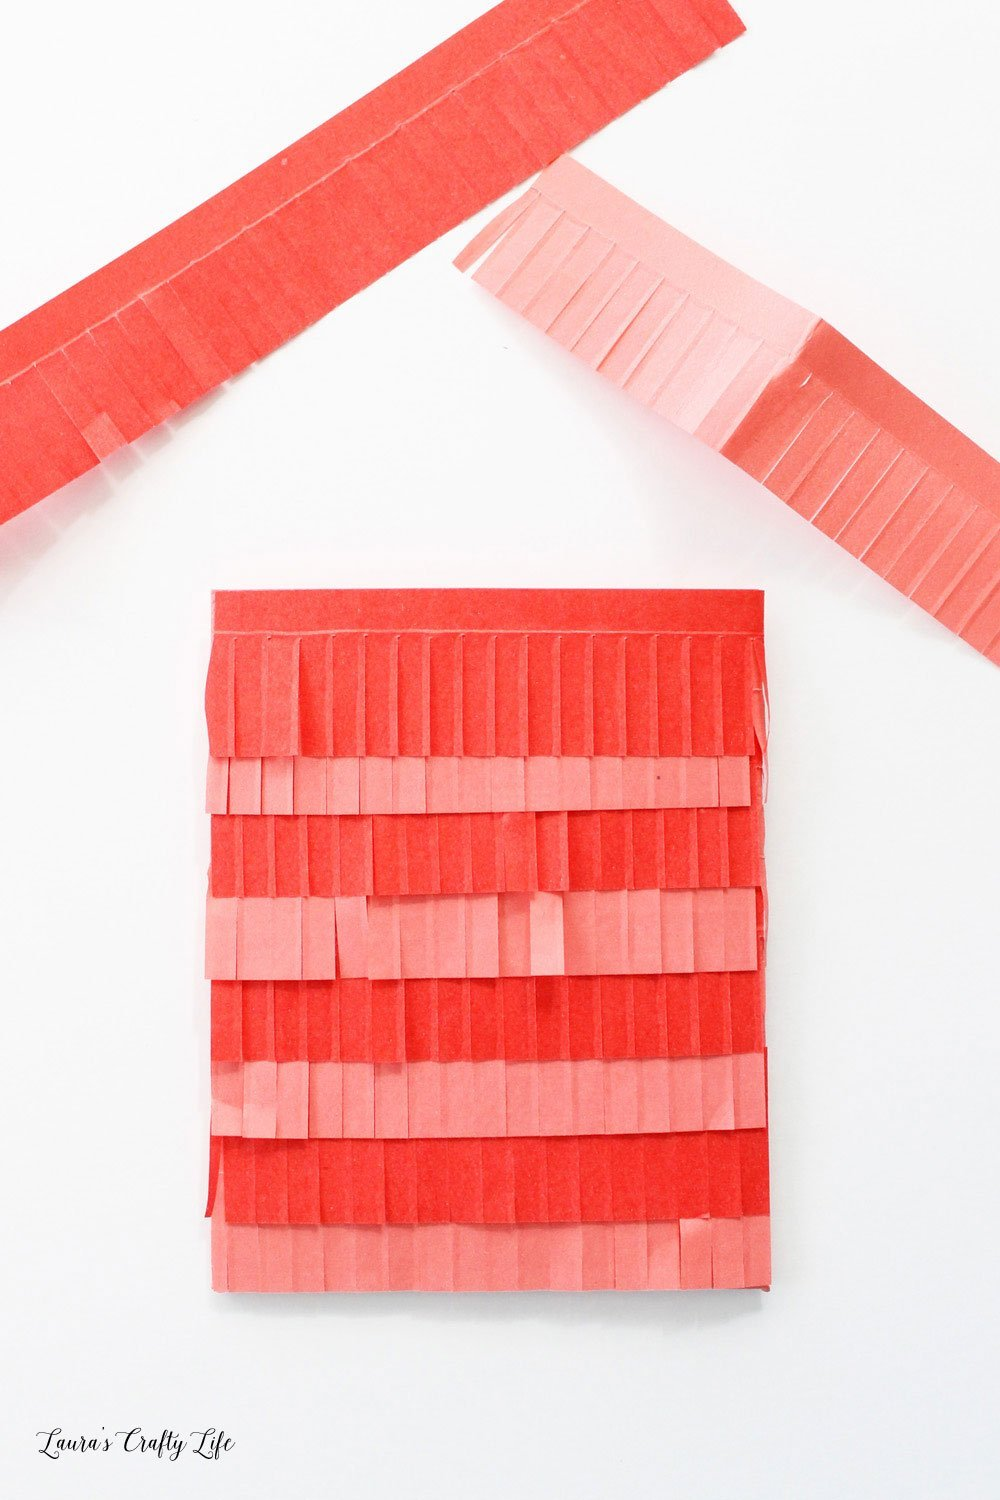 Alternate pink and red fringe tape on the envelope